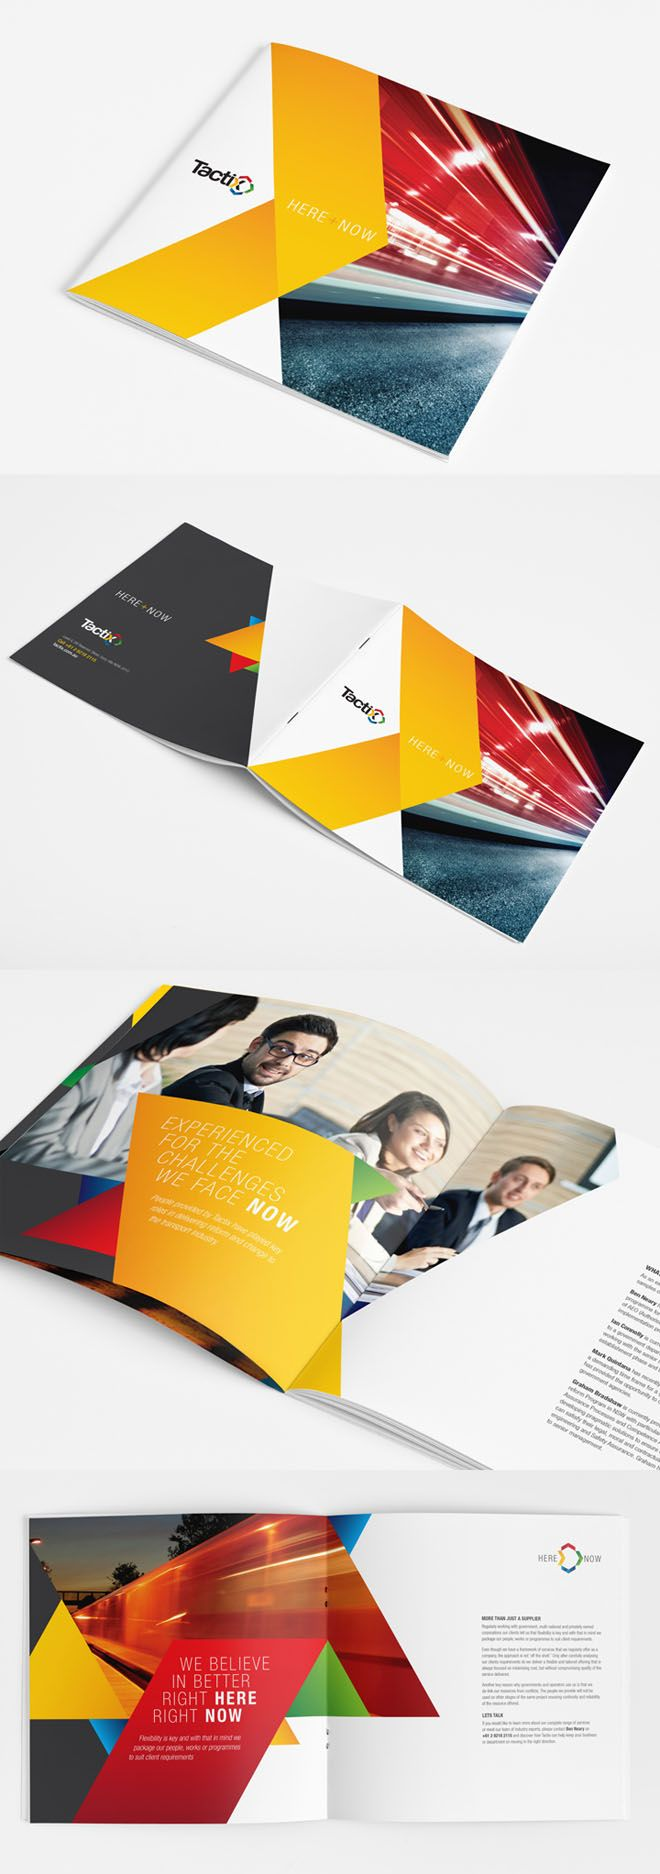 brochure design layout ideas - 1000 ideas about brochure design on pinterest brochures